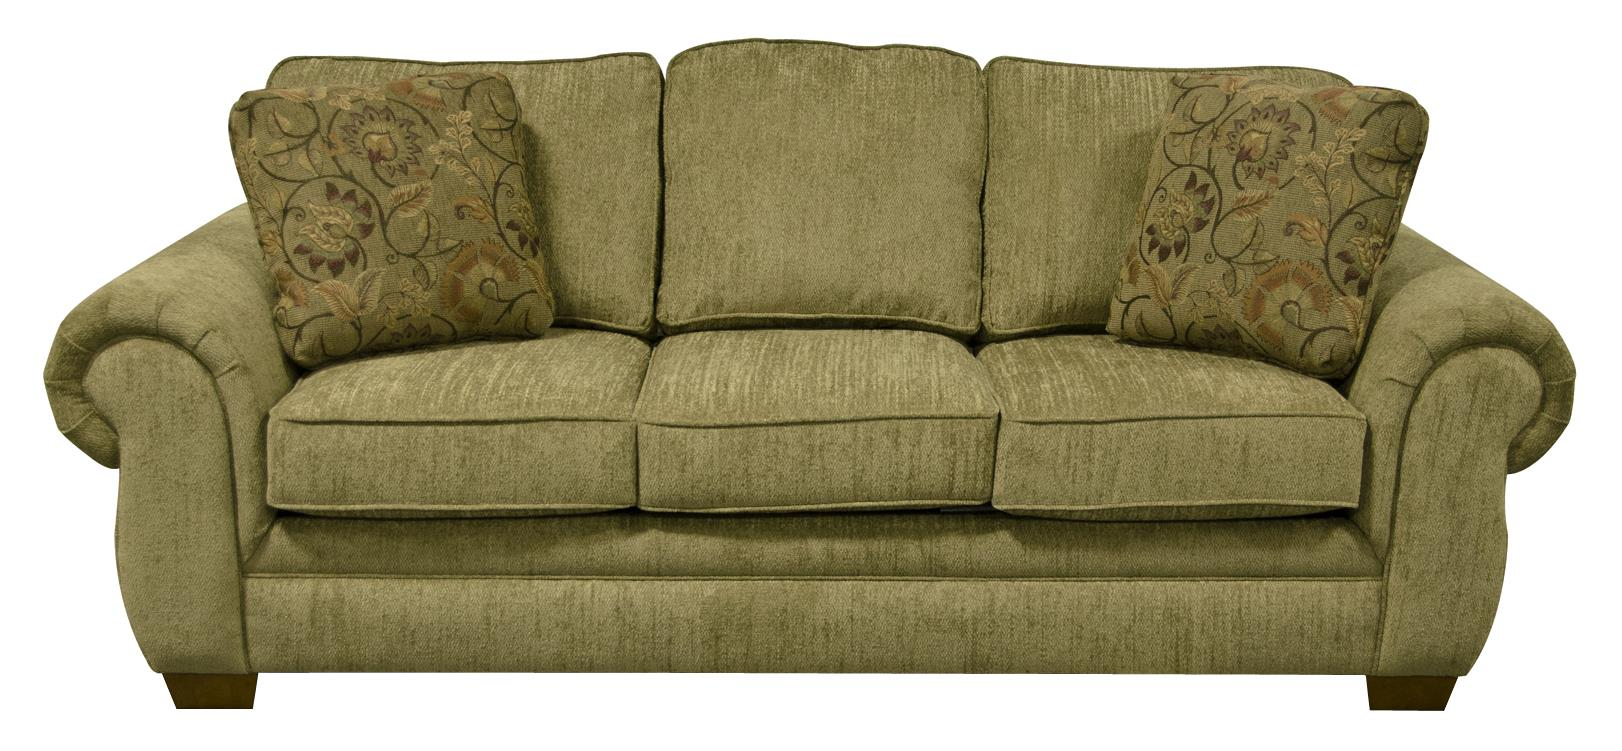 England Walters Sofa Sleeper - Item Number: 6639N-6939